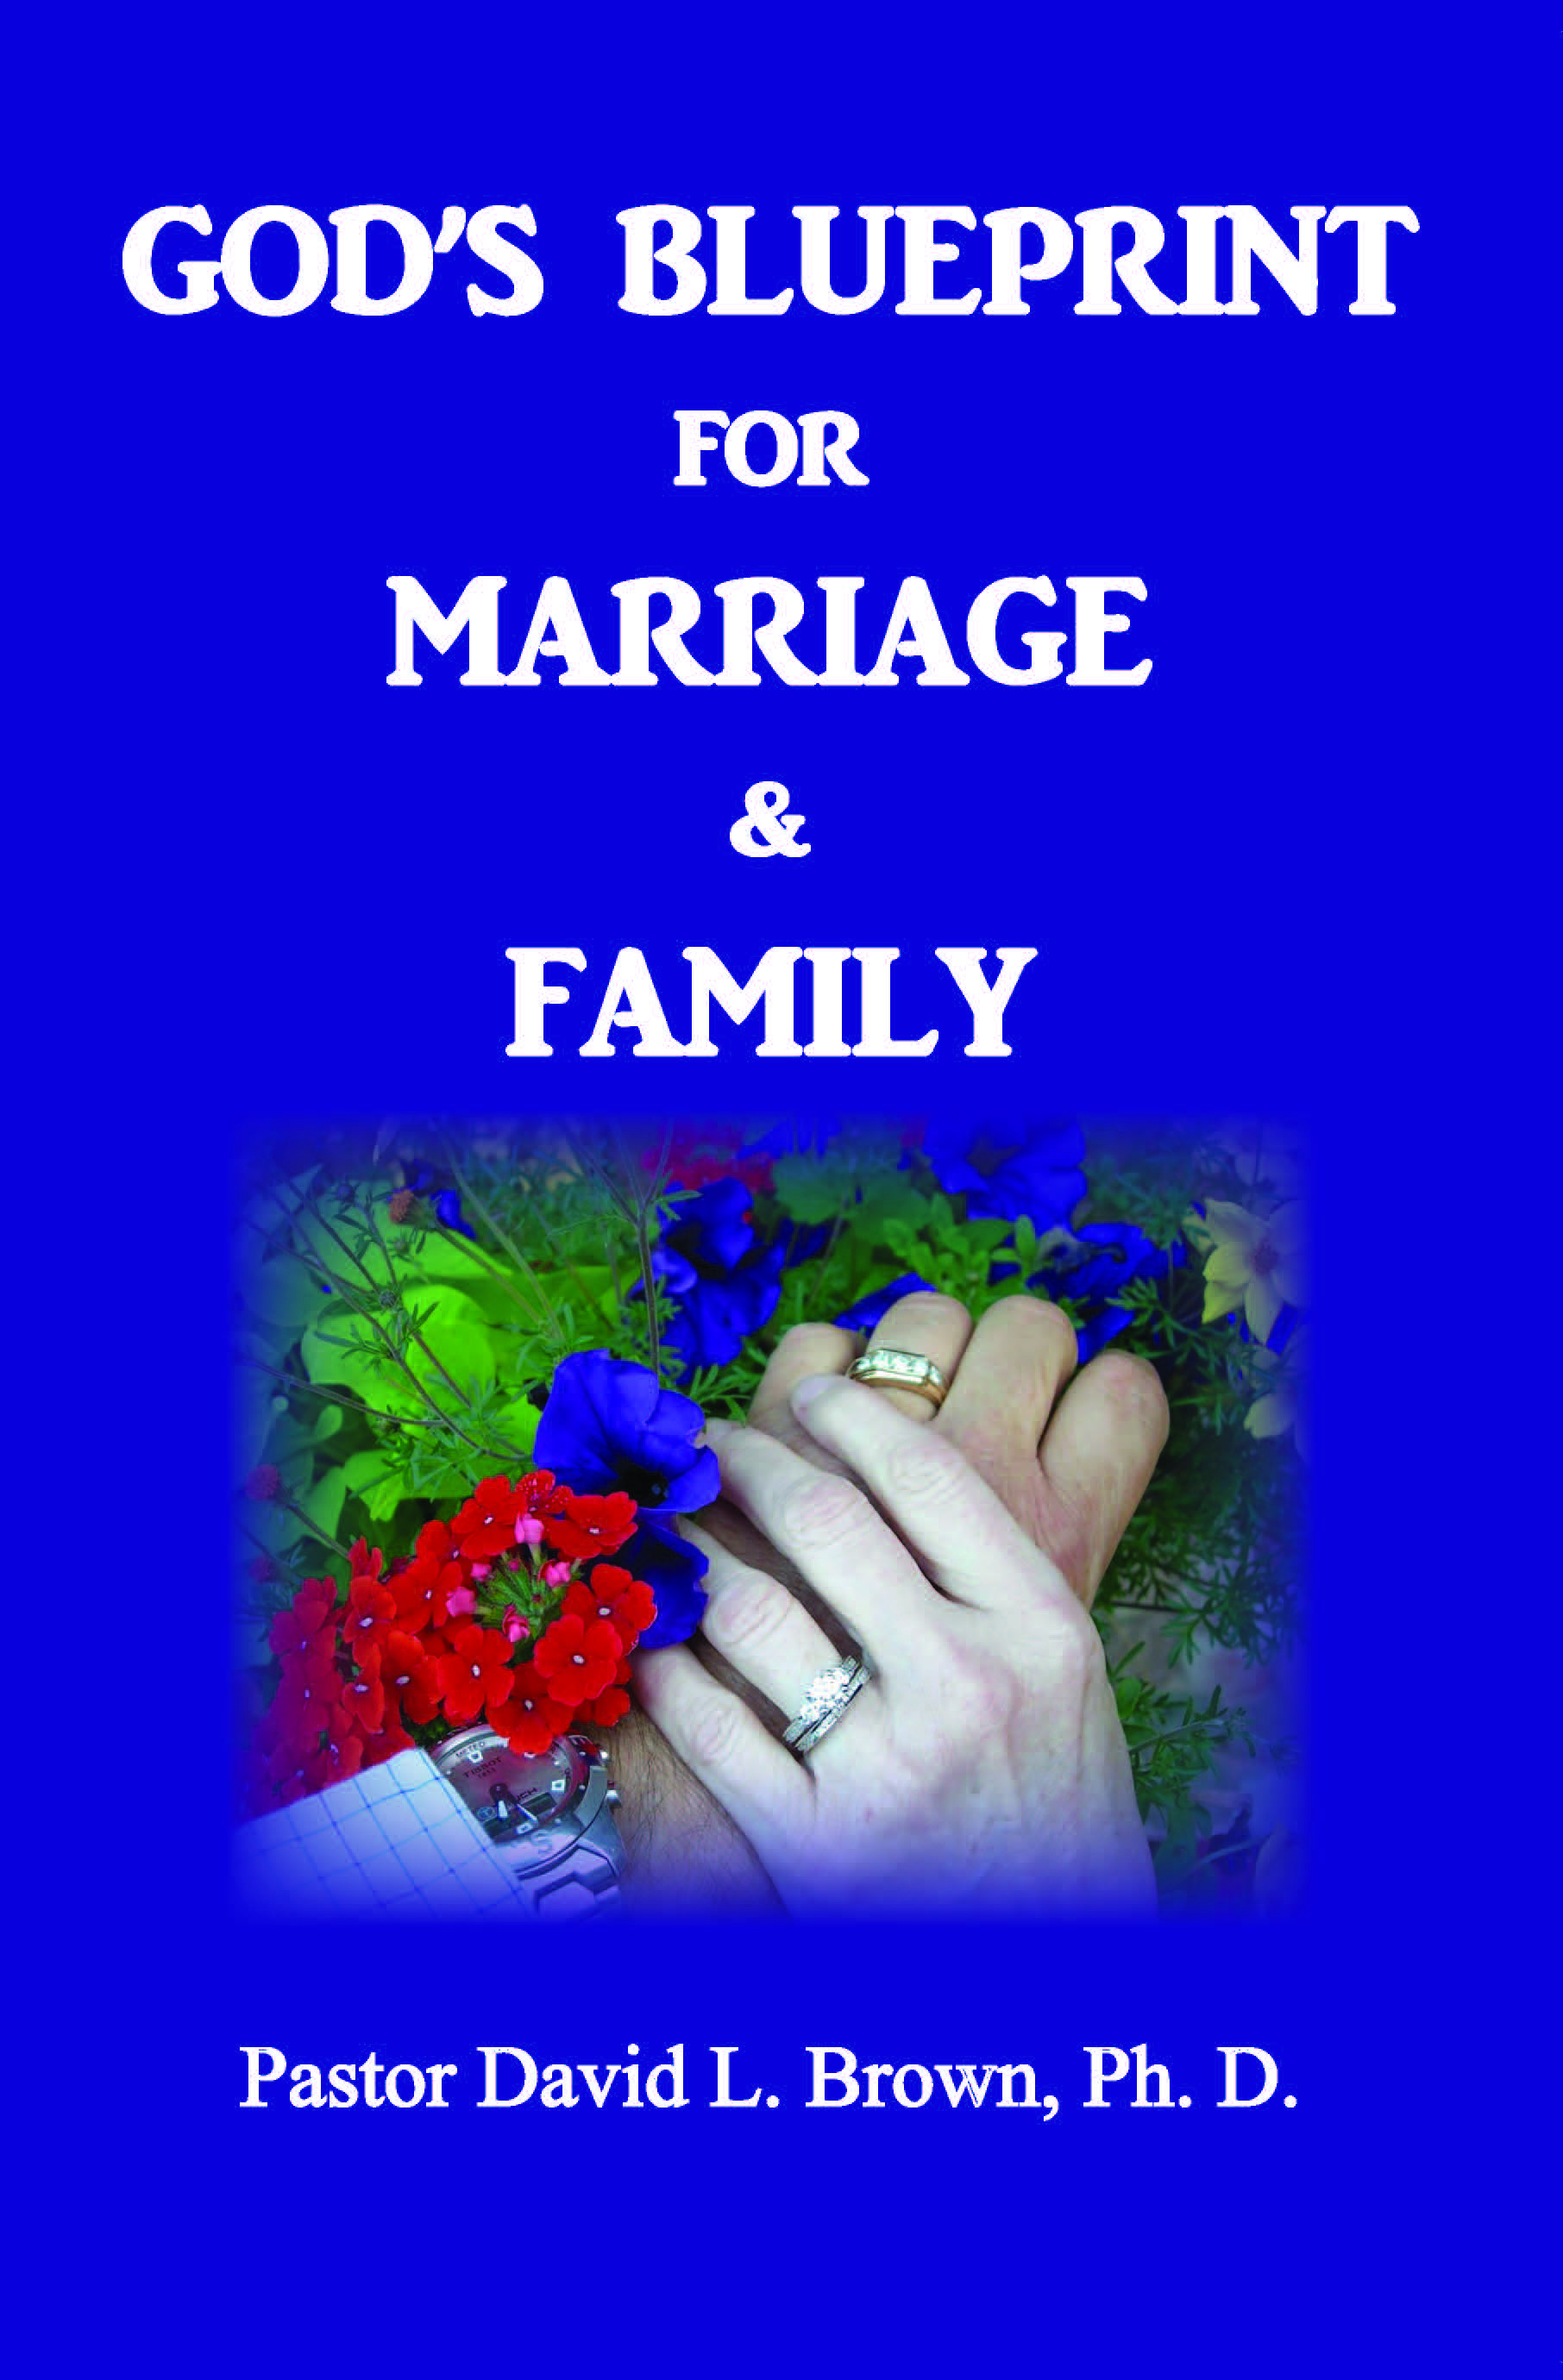 Brown books god has a blueprint for building strong successful marriages and families he has clearly drawn out that blueprint in the bible discover the truth in this malvernweather Choice Image